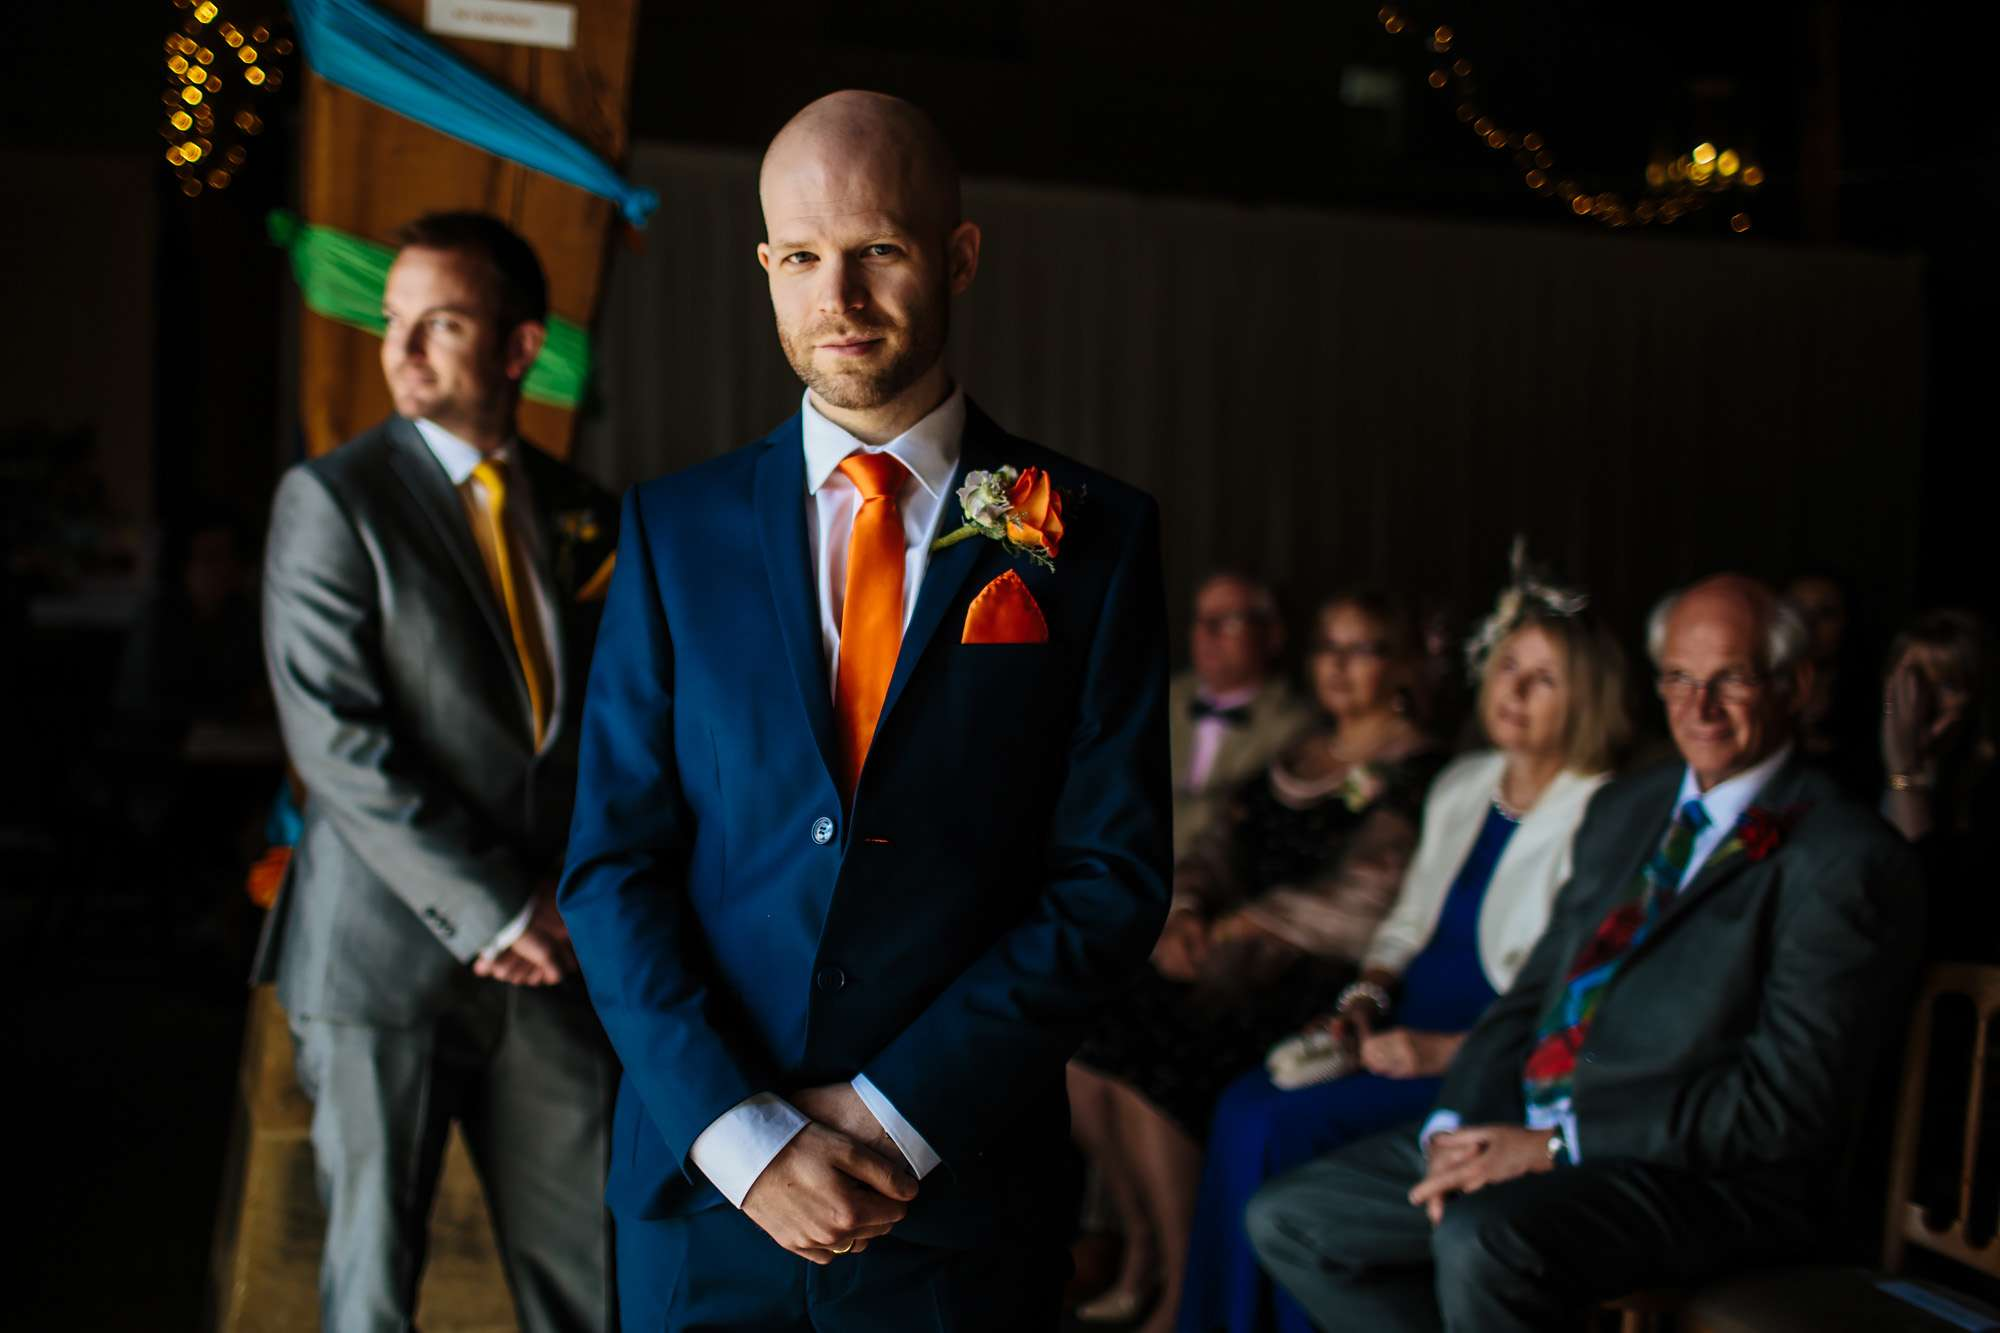 Groom awaiting his bride at a Yorkshire wedding